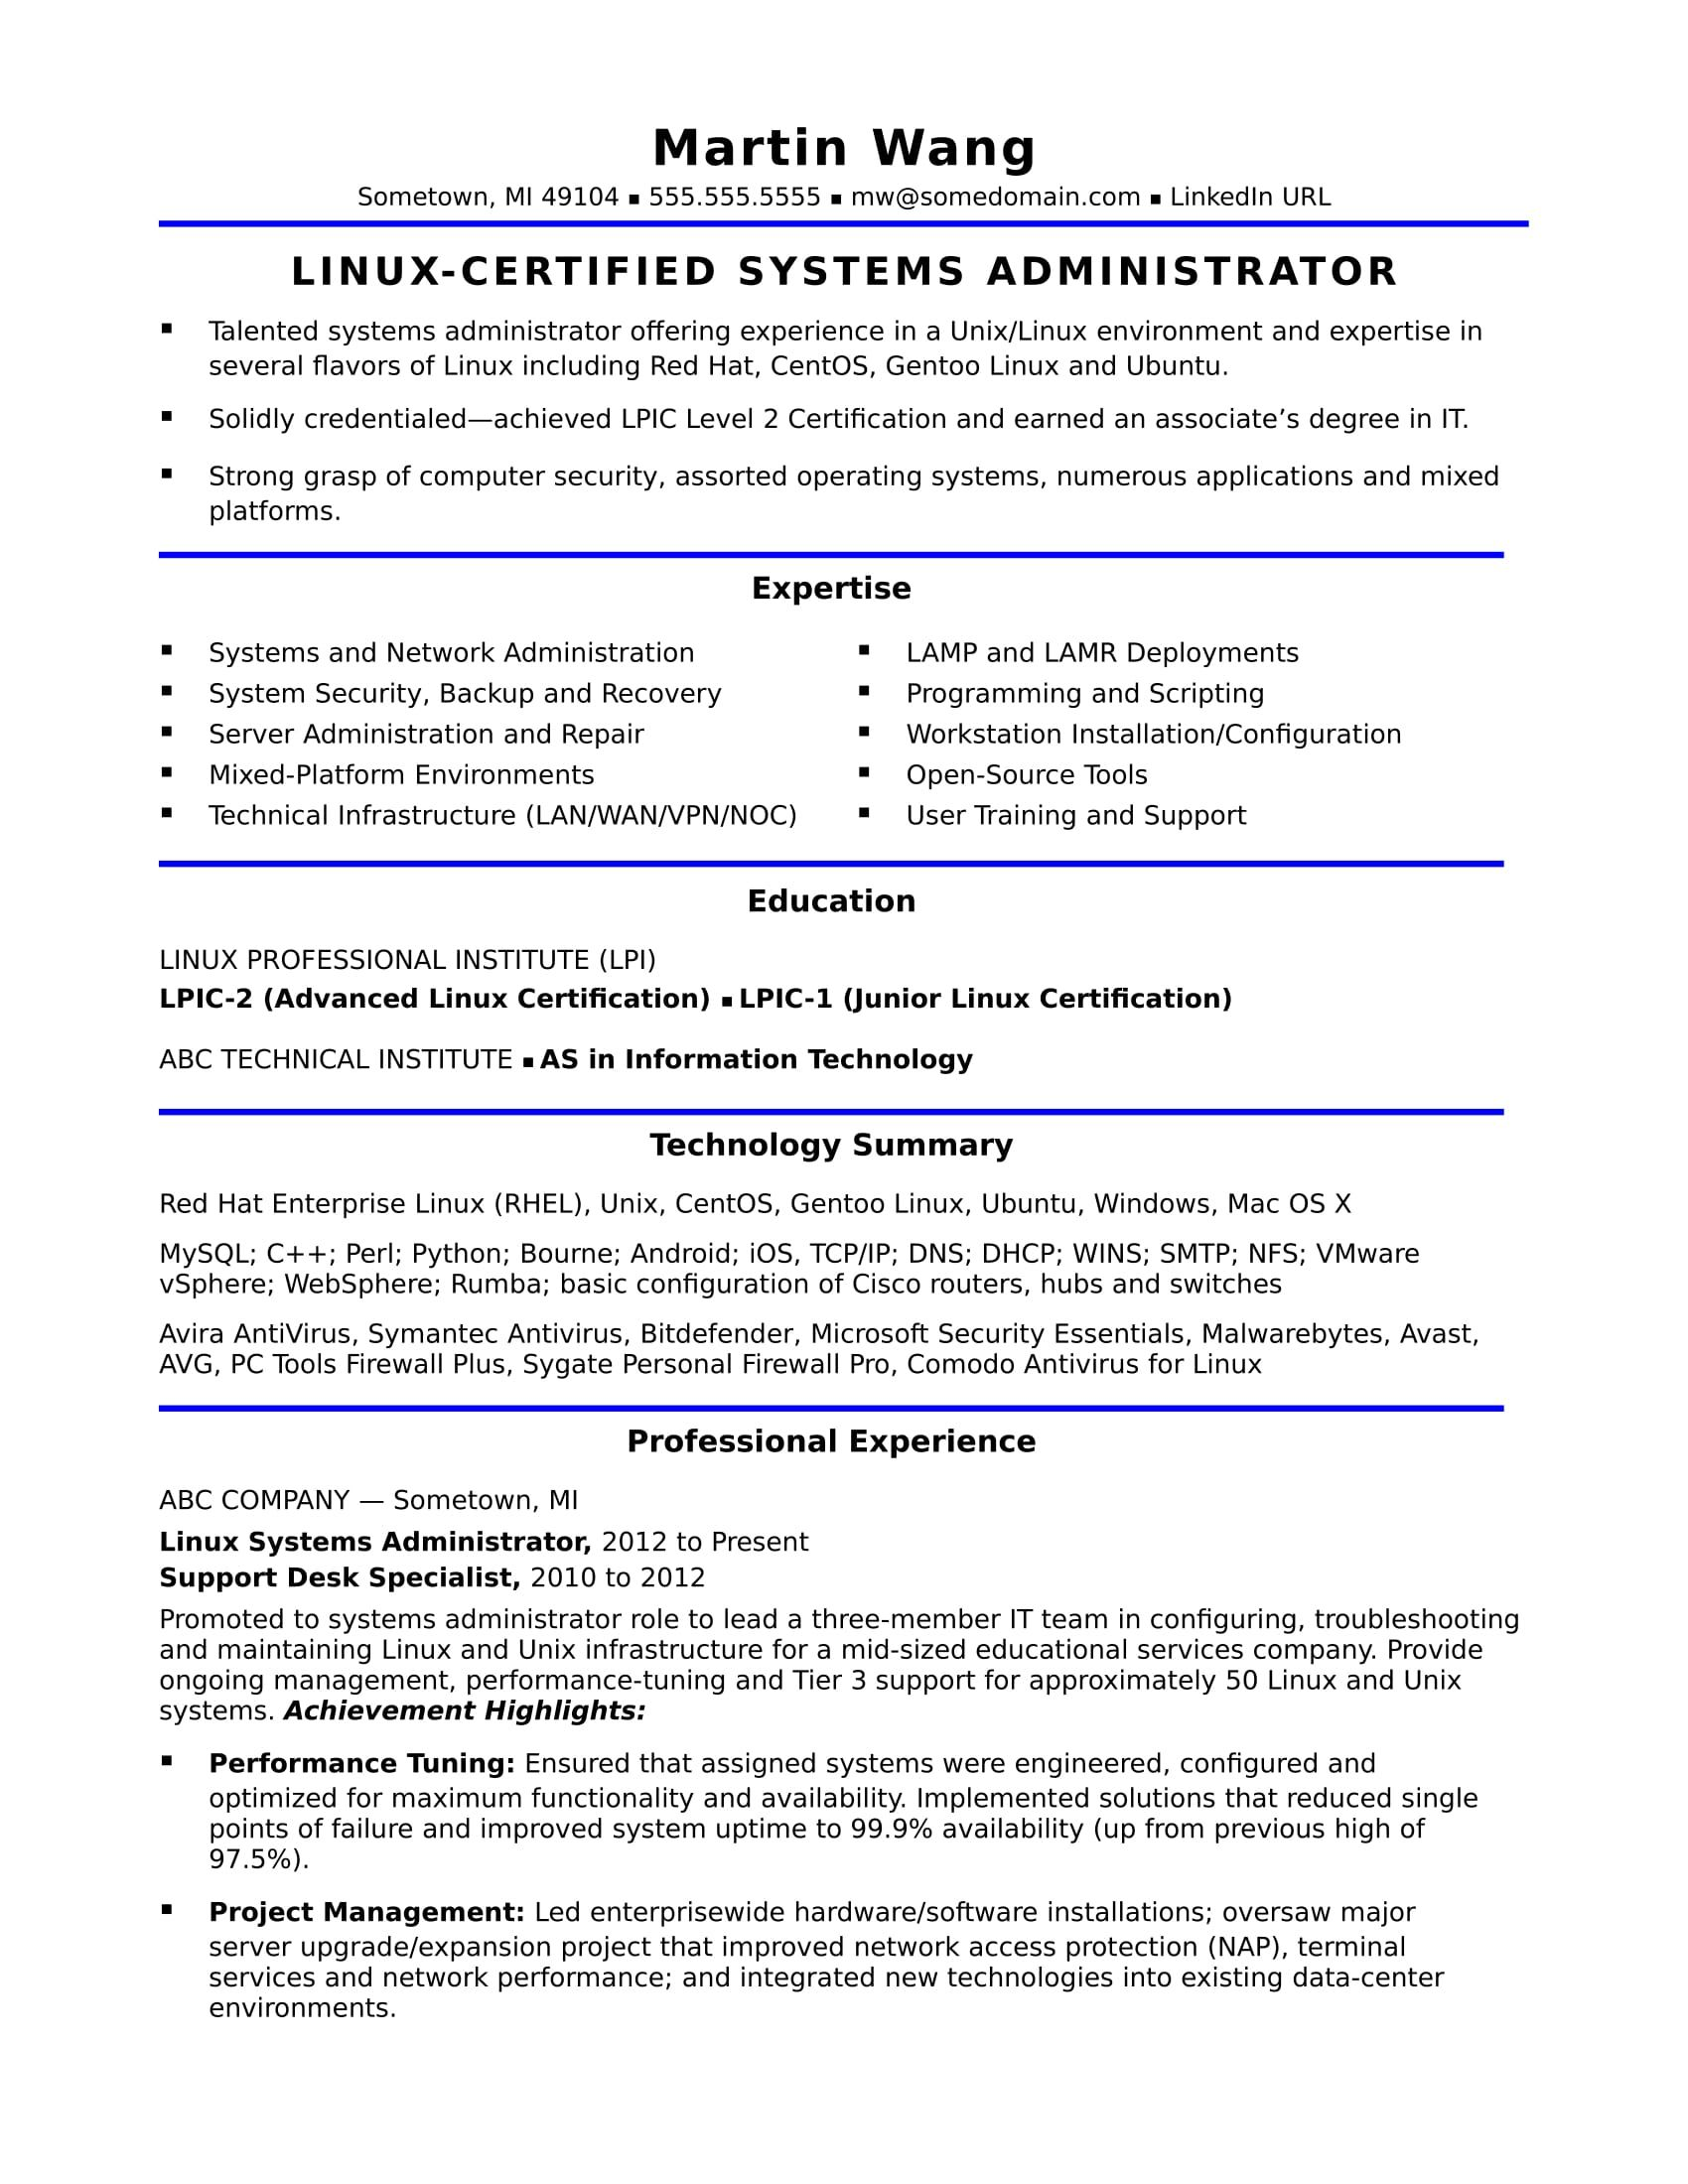 Network Administration Resume New See This Sample Resume For A Midlevel Systems Adminstrator For Help .